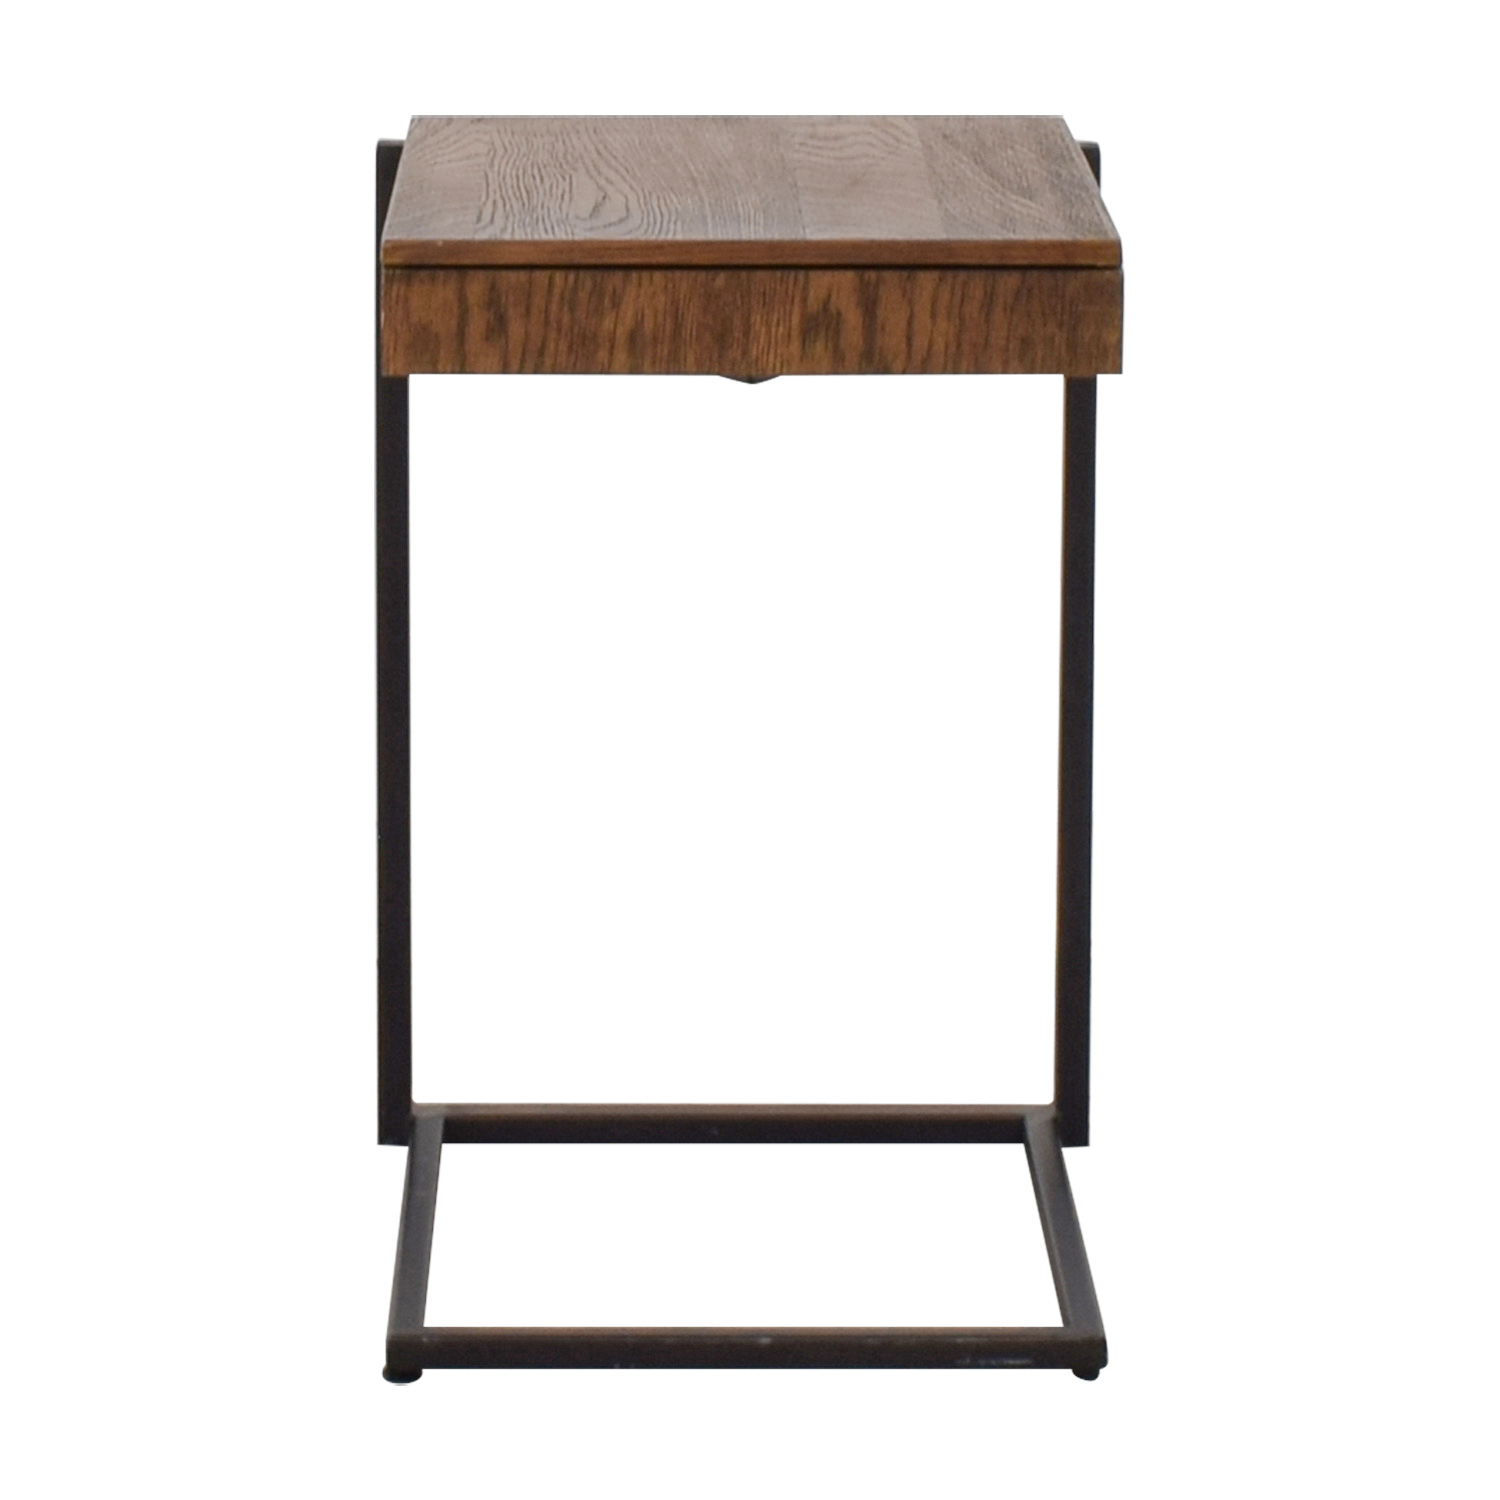 58 Off Rustic Wood And Metal Nightstand Tables